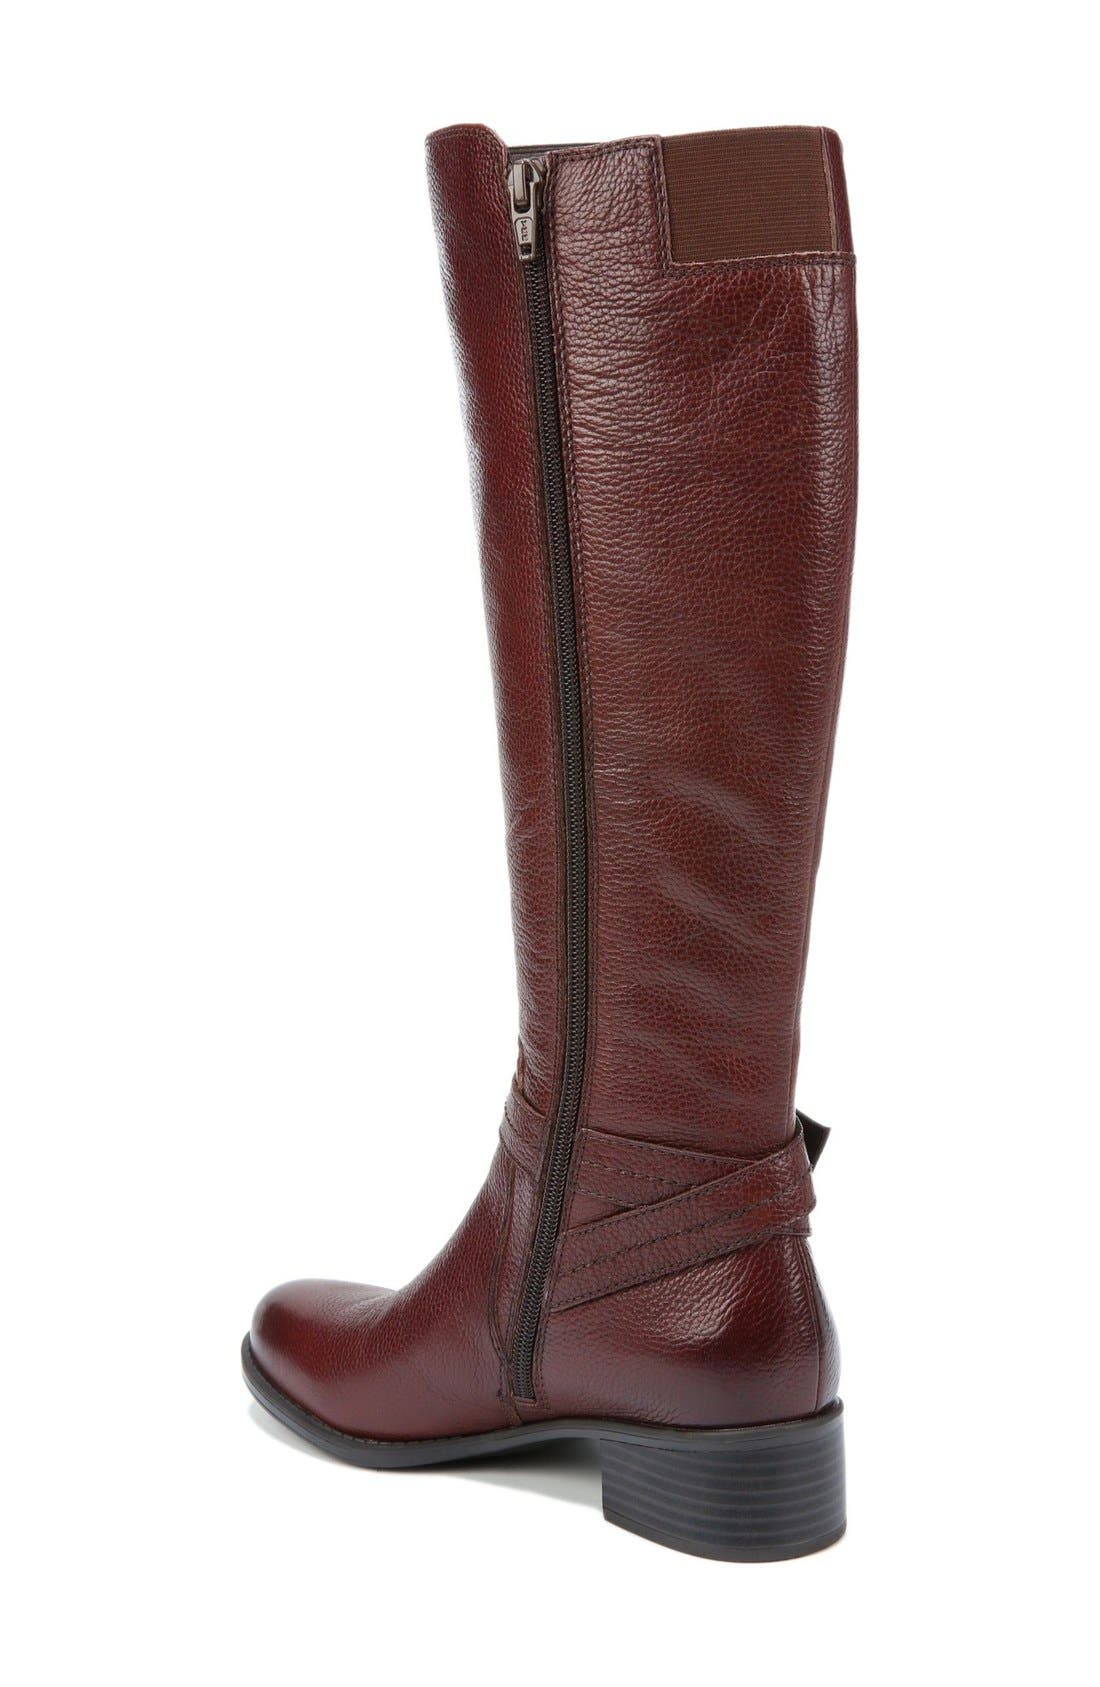 'Wynnie' Riding Boot,                             Alternate thumbnail 2, color,                             Brown Leather